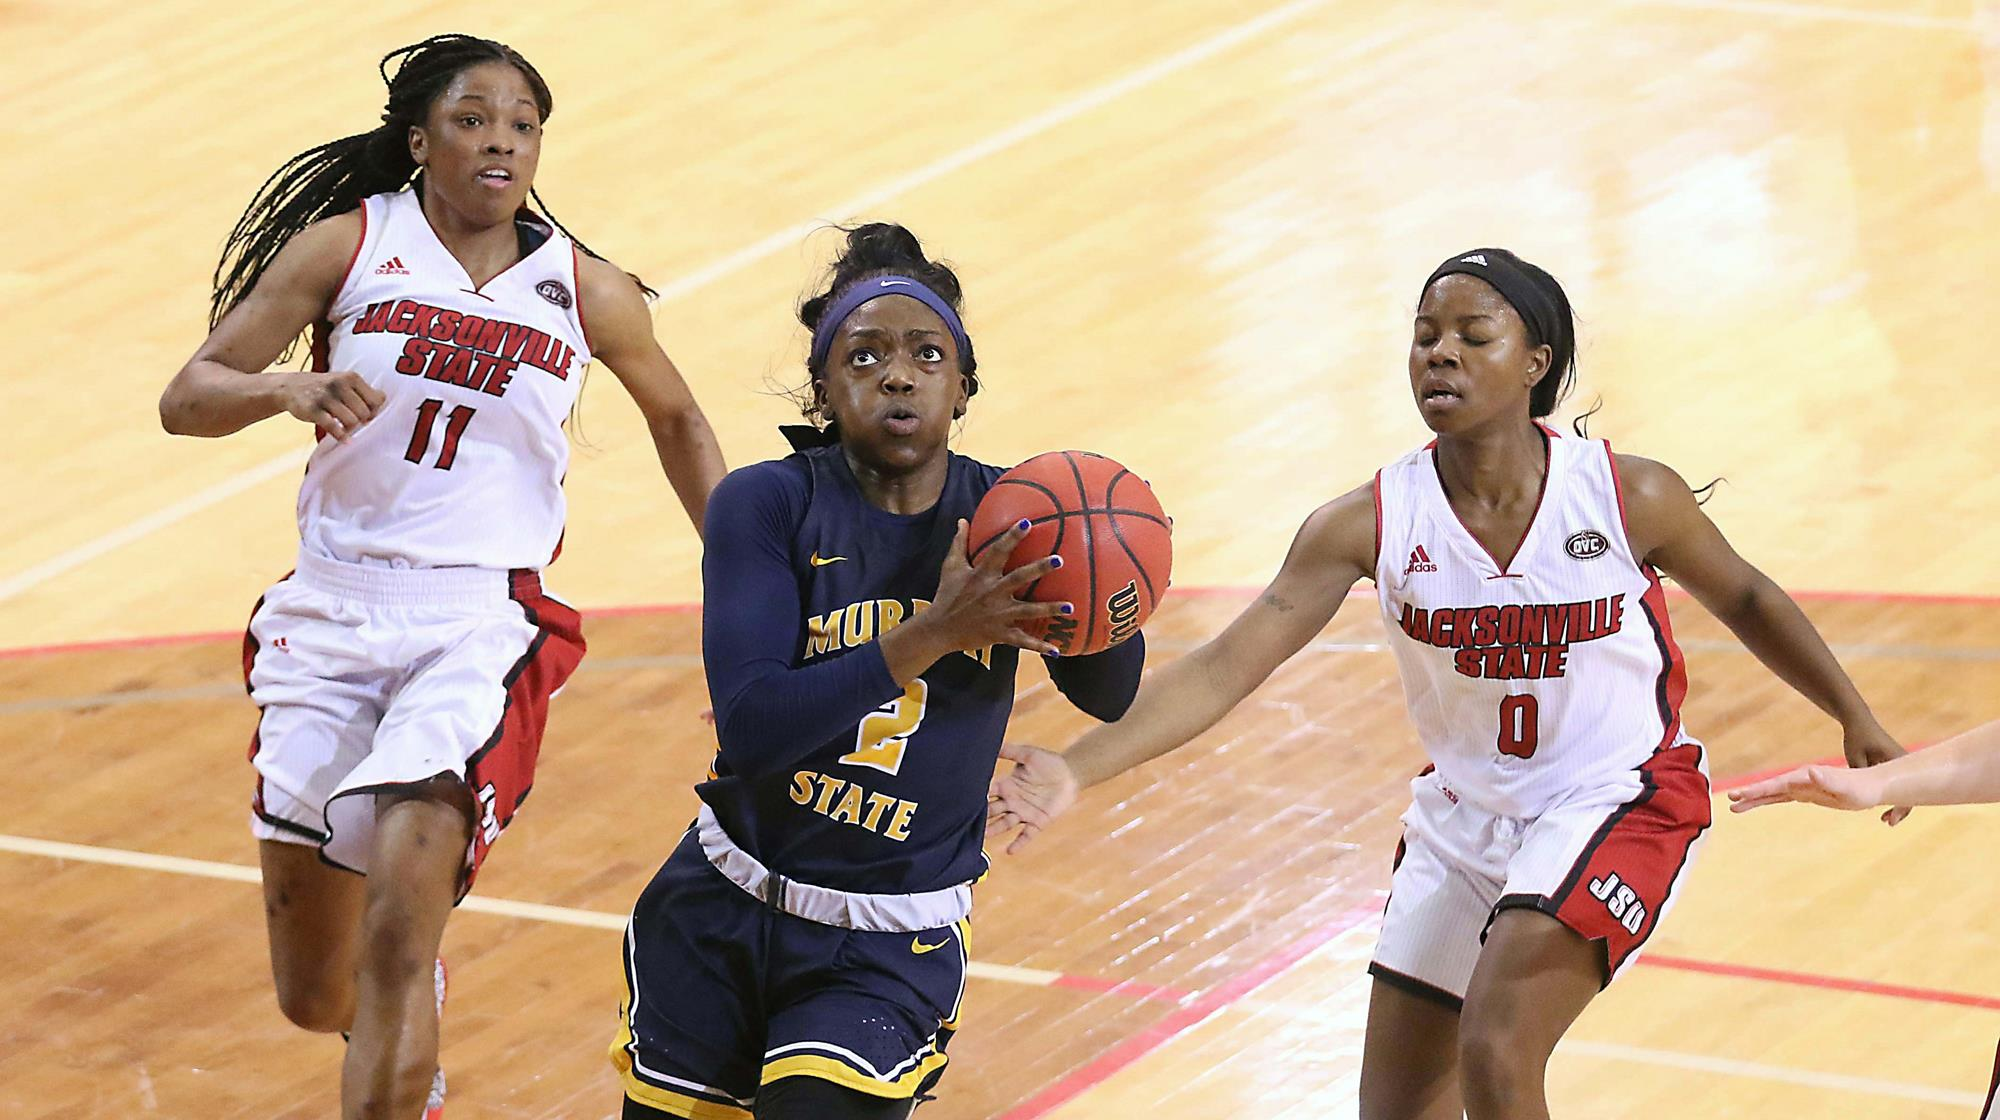 Murray State's James wins weekly OVC women's hoops honor